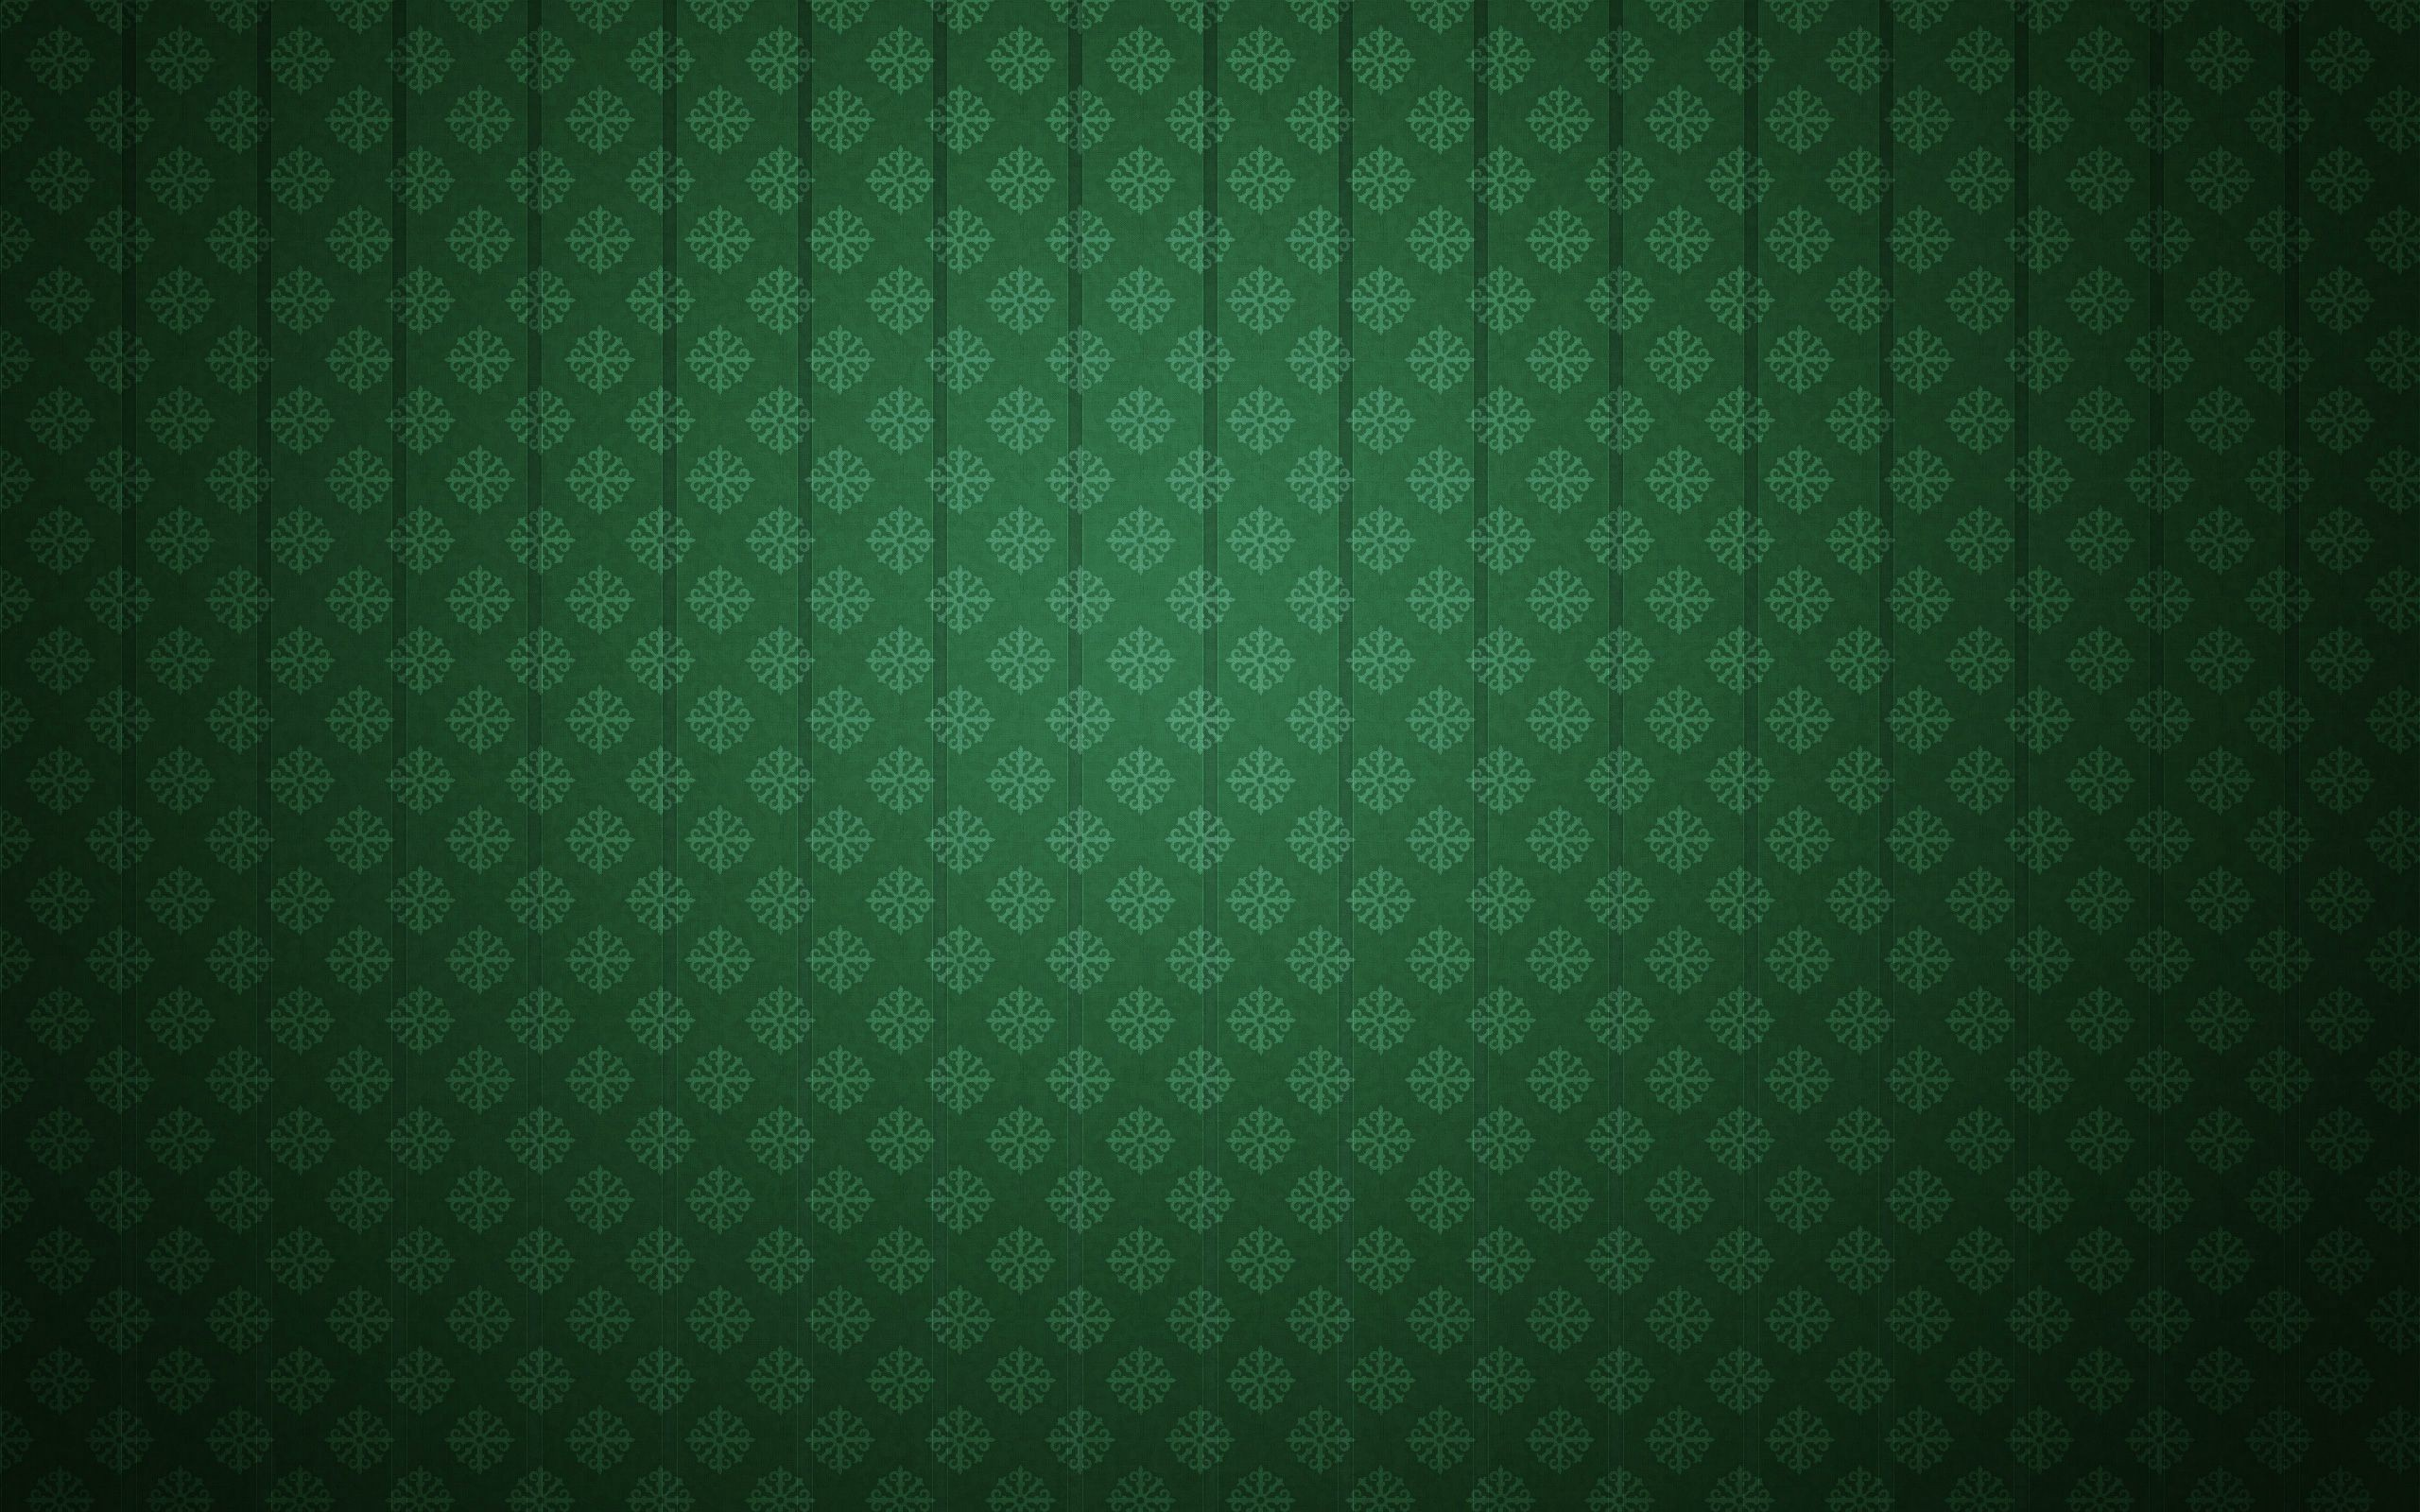 green pattern backgrounds - photo #17